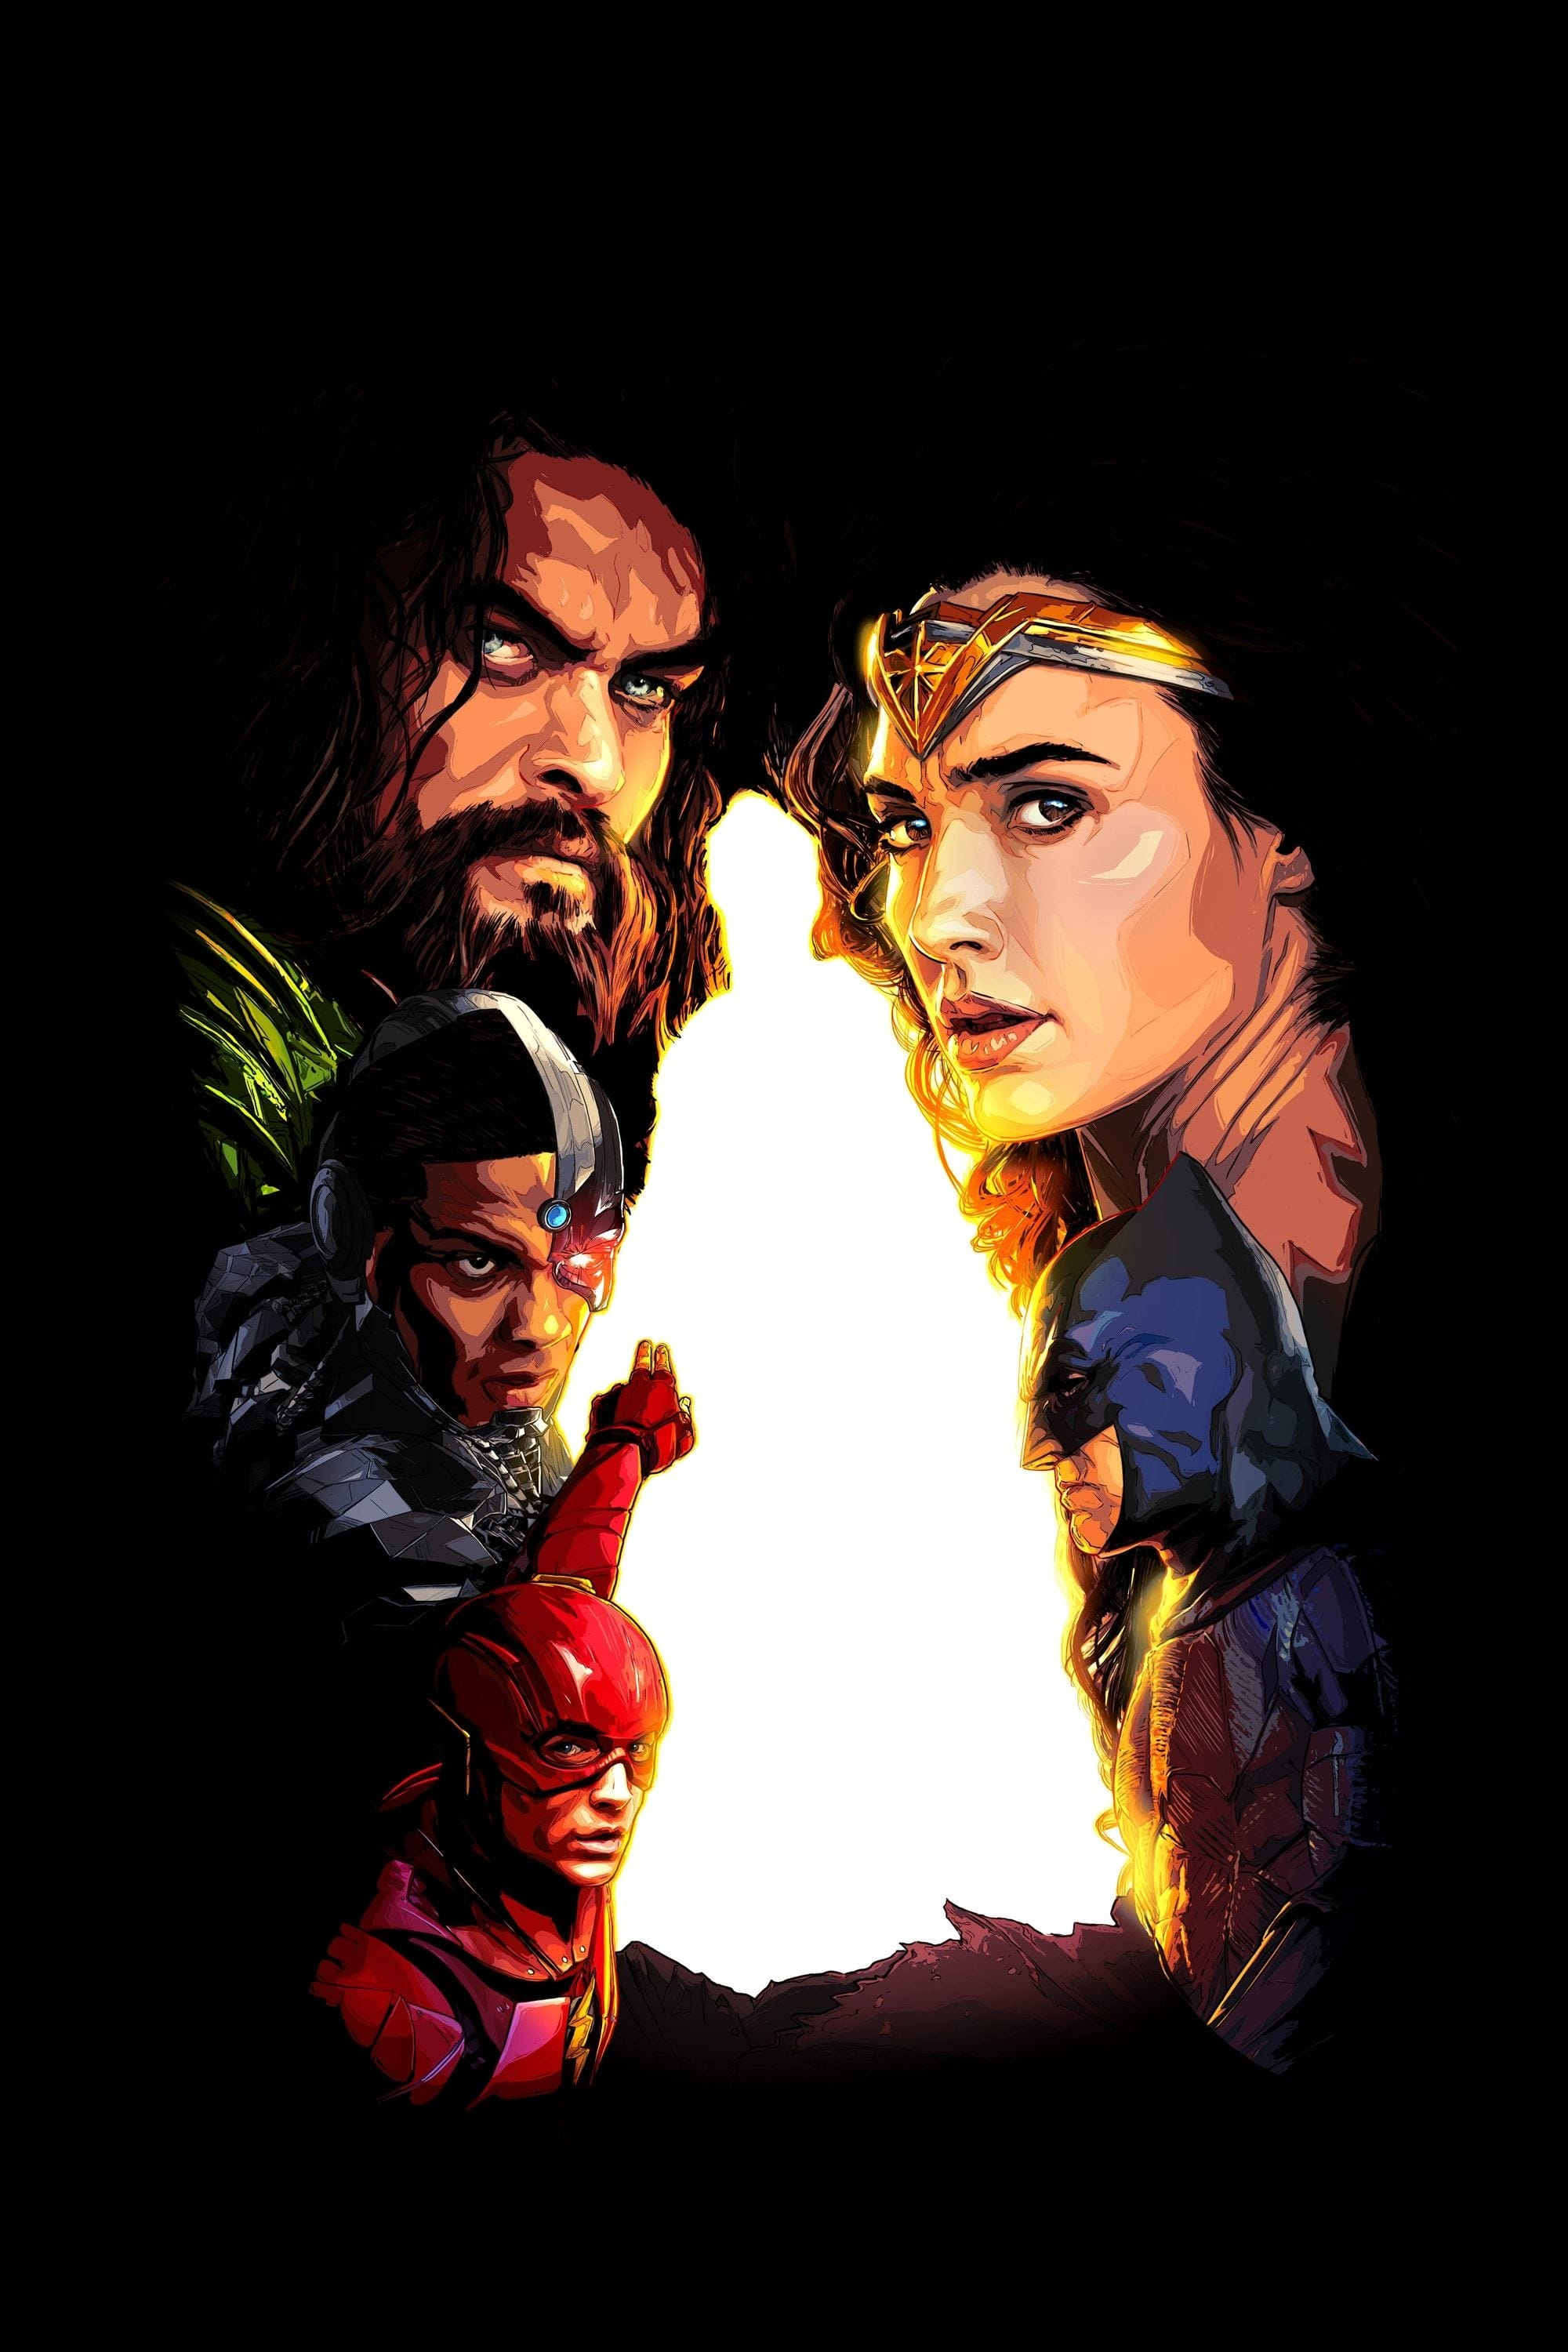 Justice League (2017) Poster